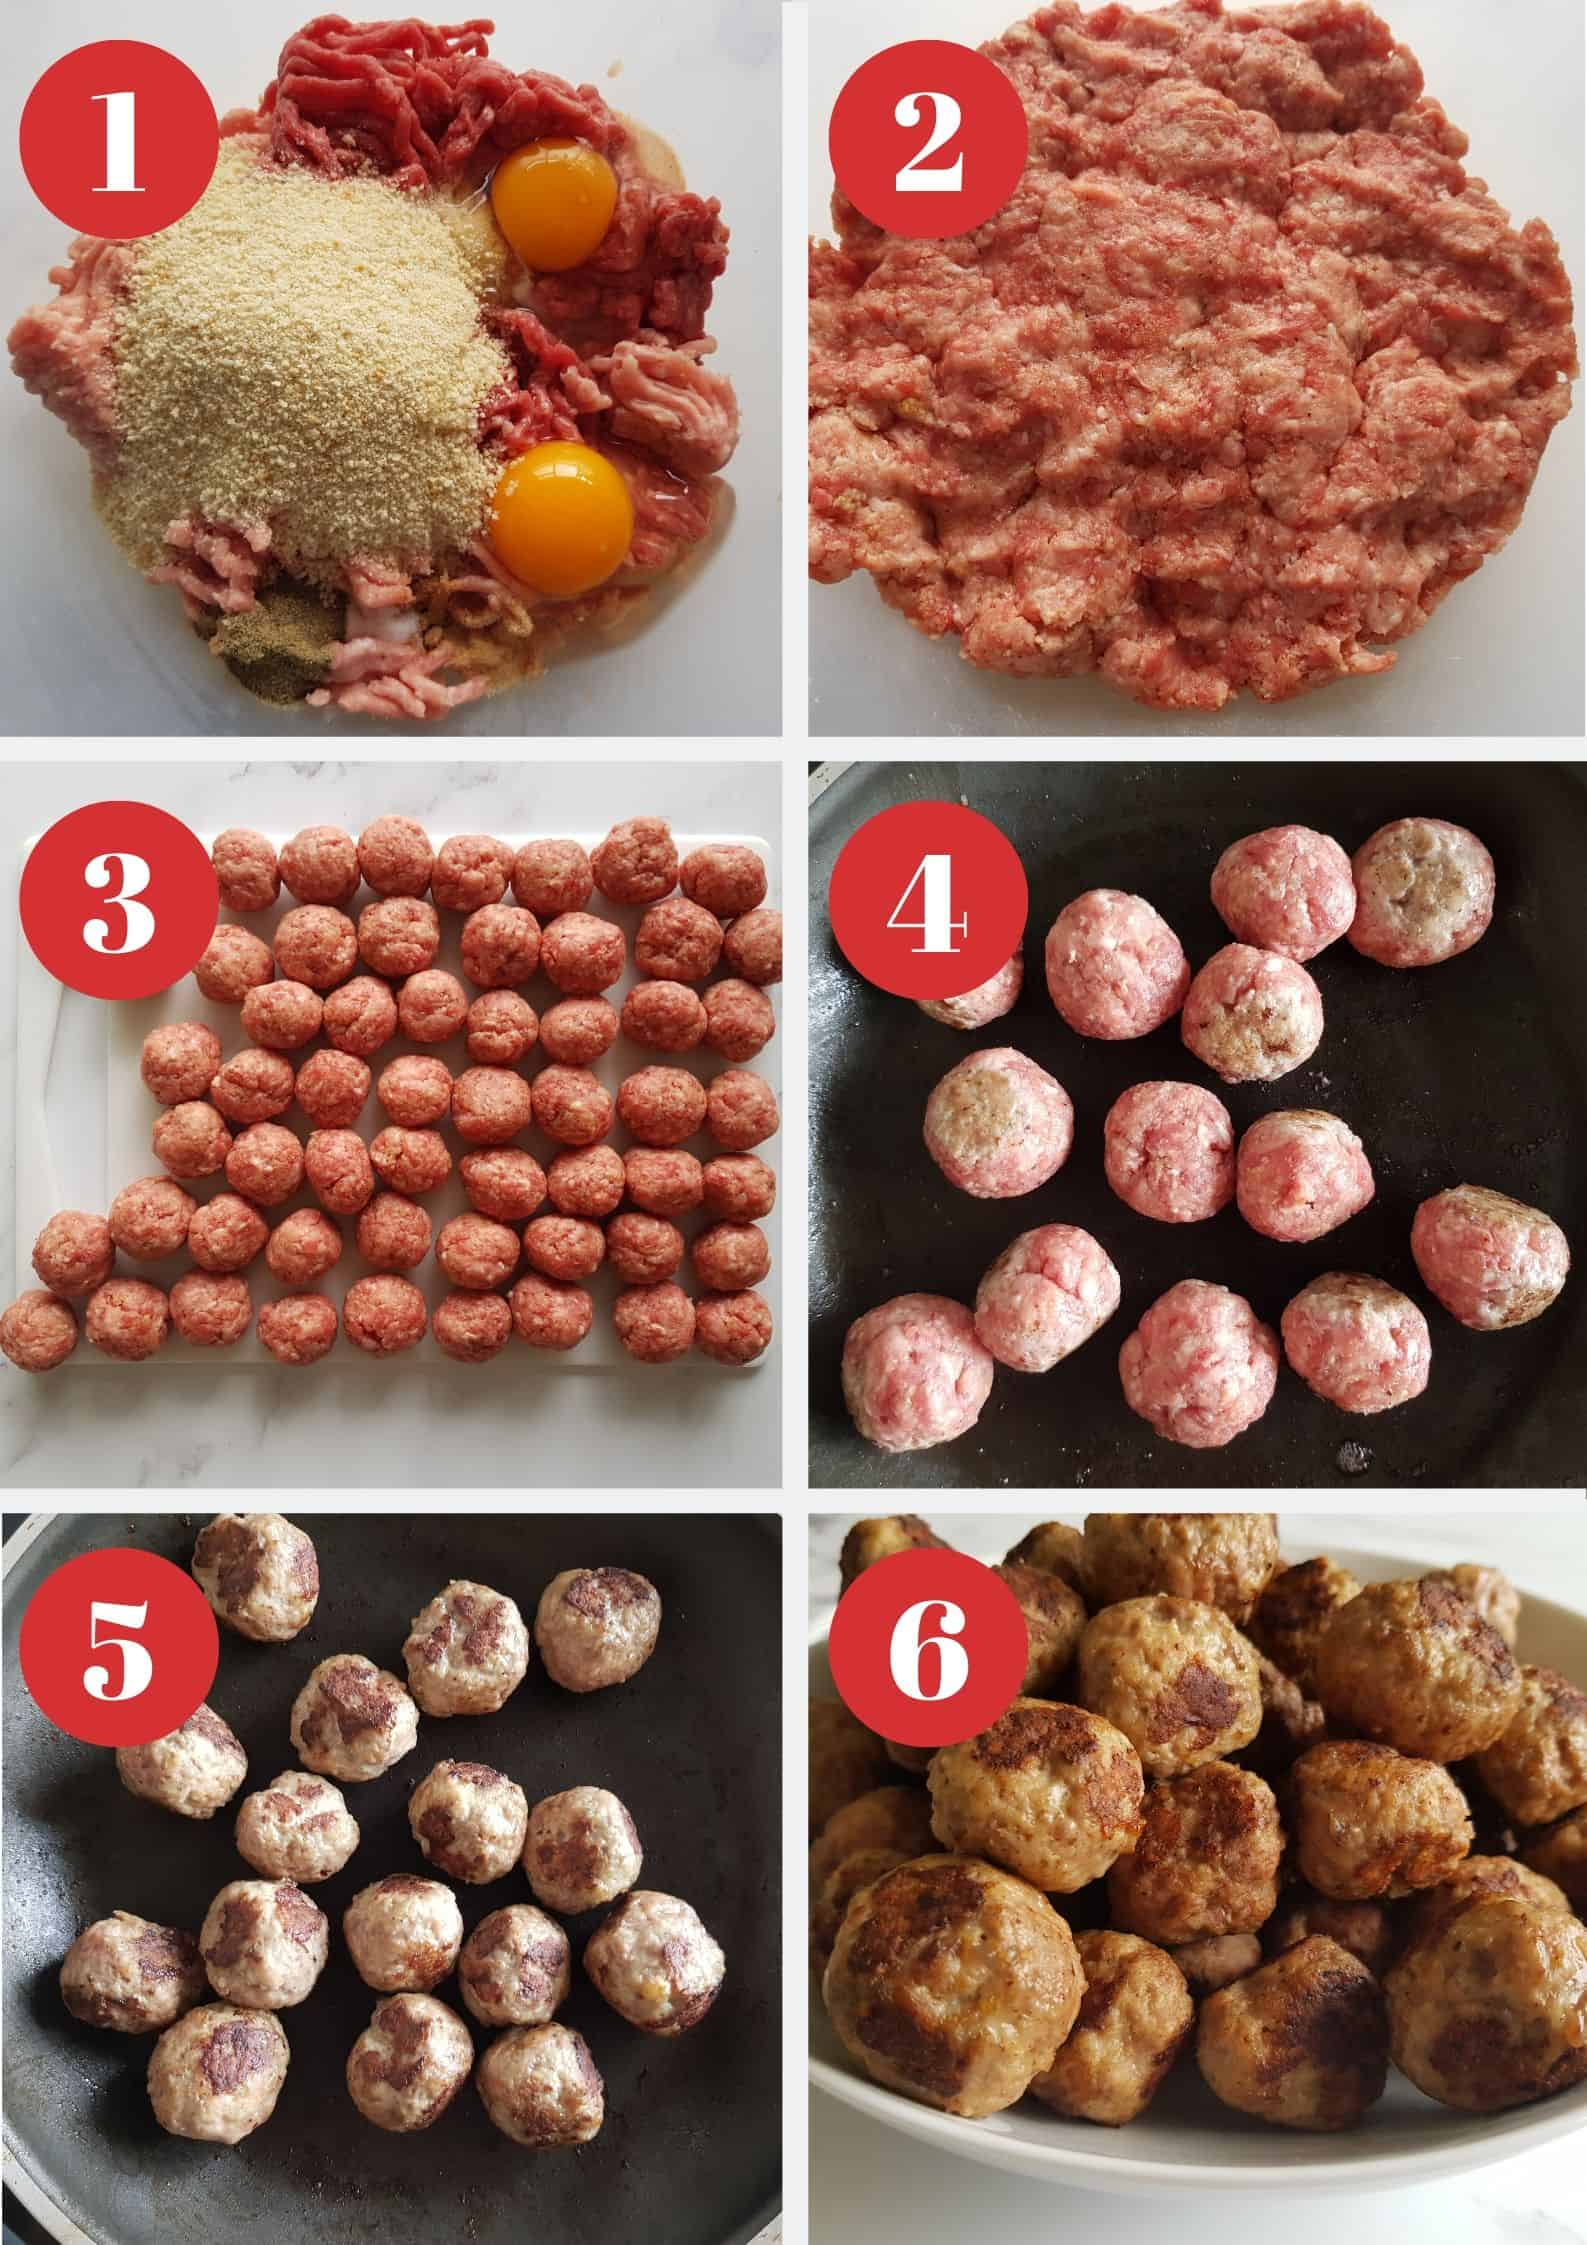 Infographic showing how to make meatballs.